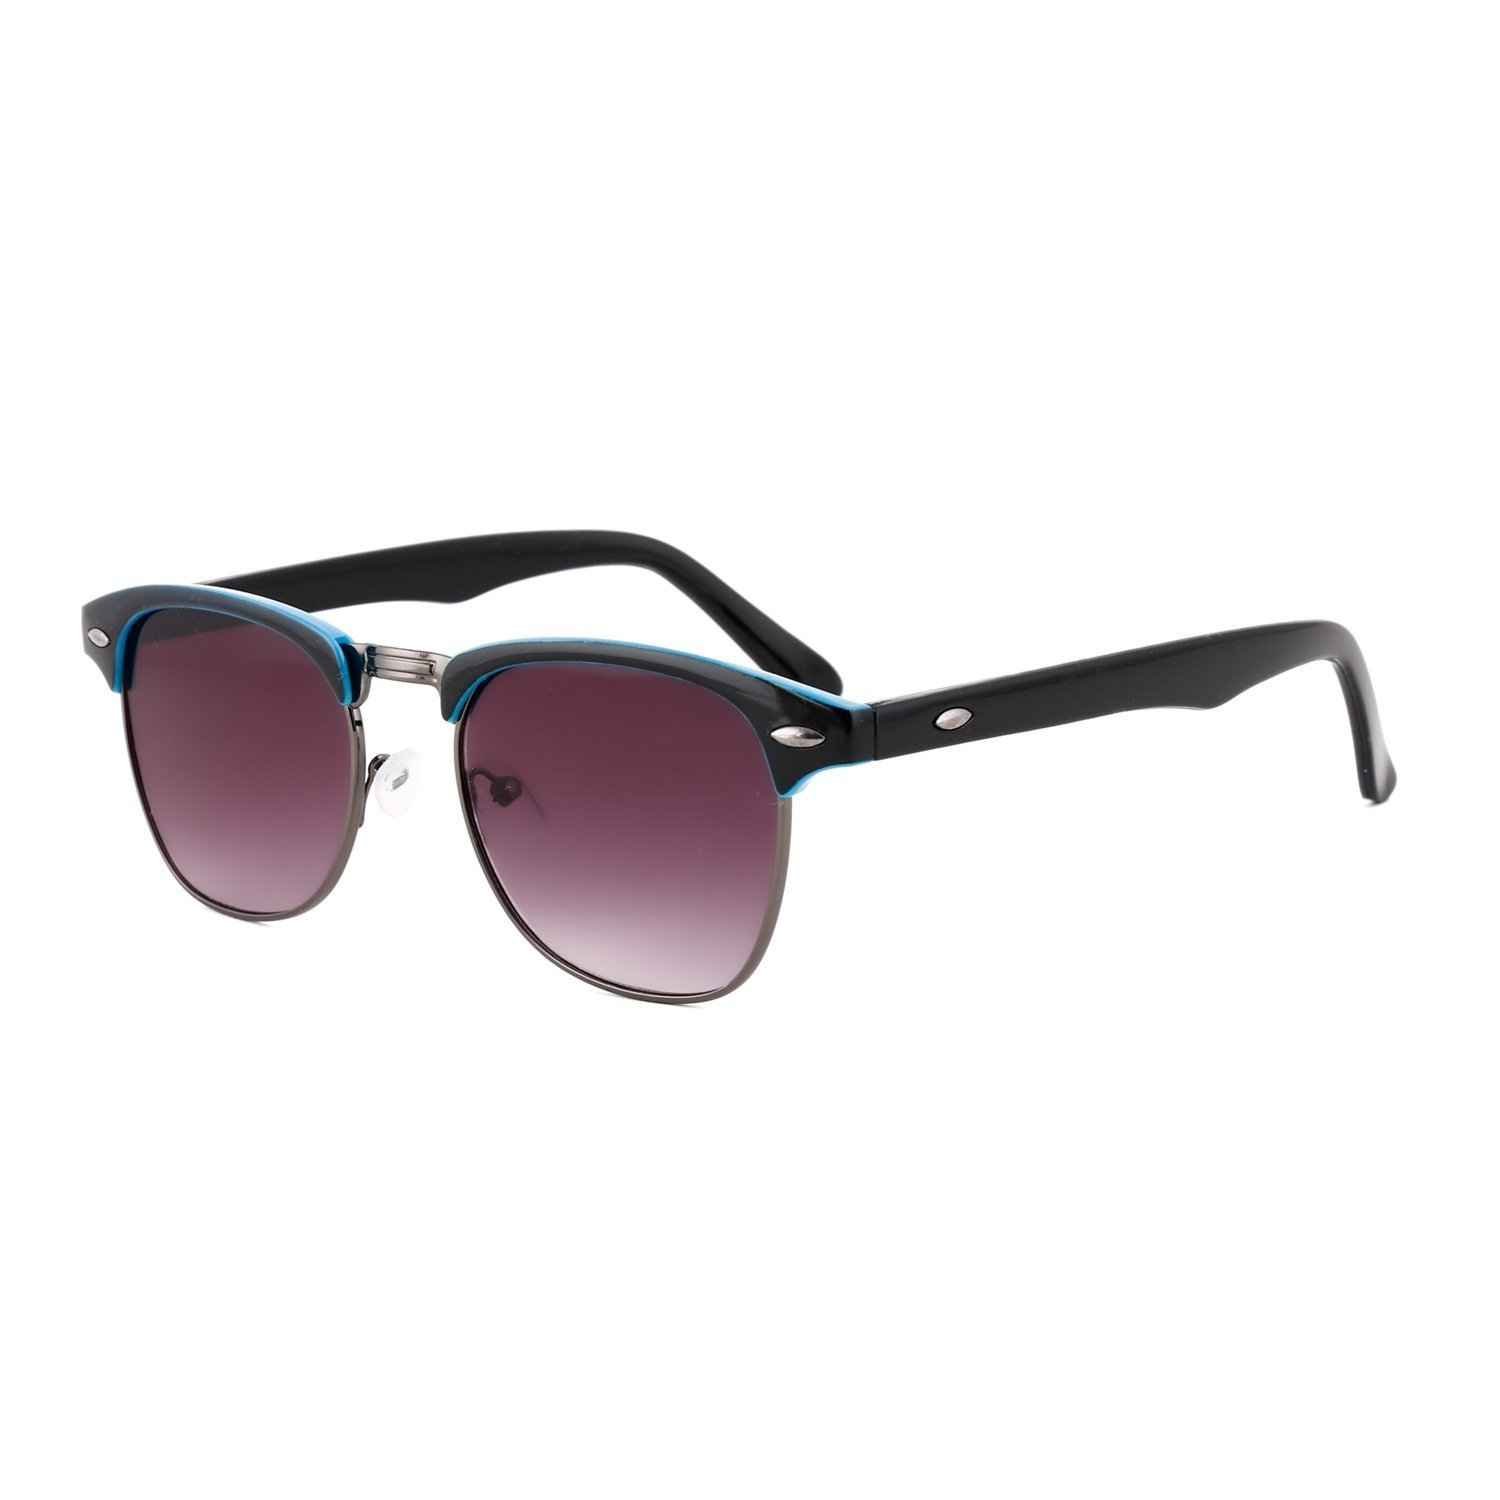 Royal Son Round Unisex Sunglasses for Rs 249 (75% off)